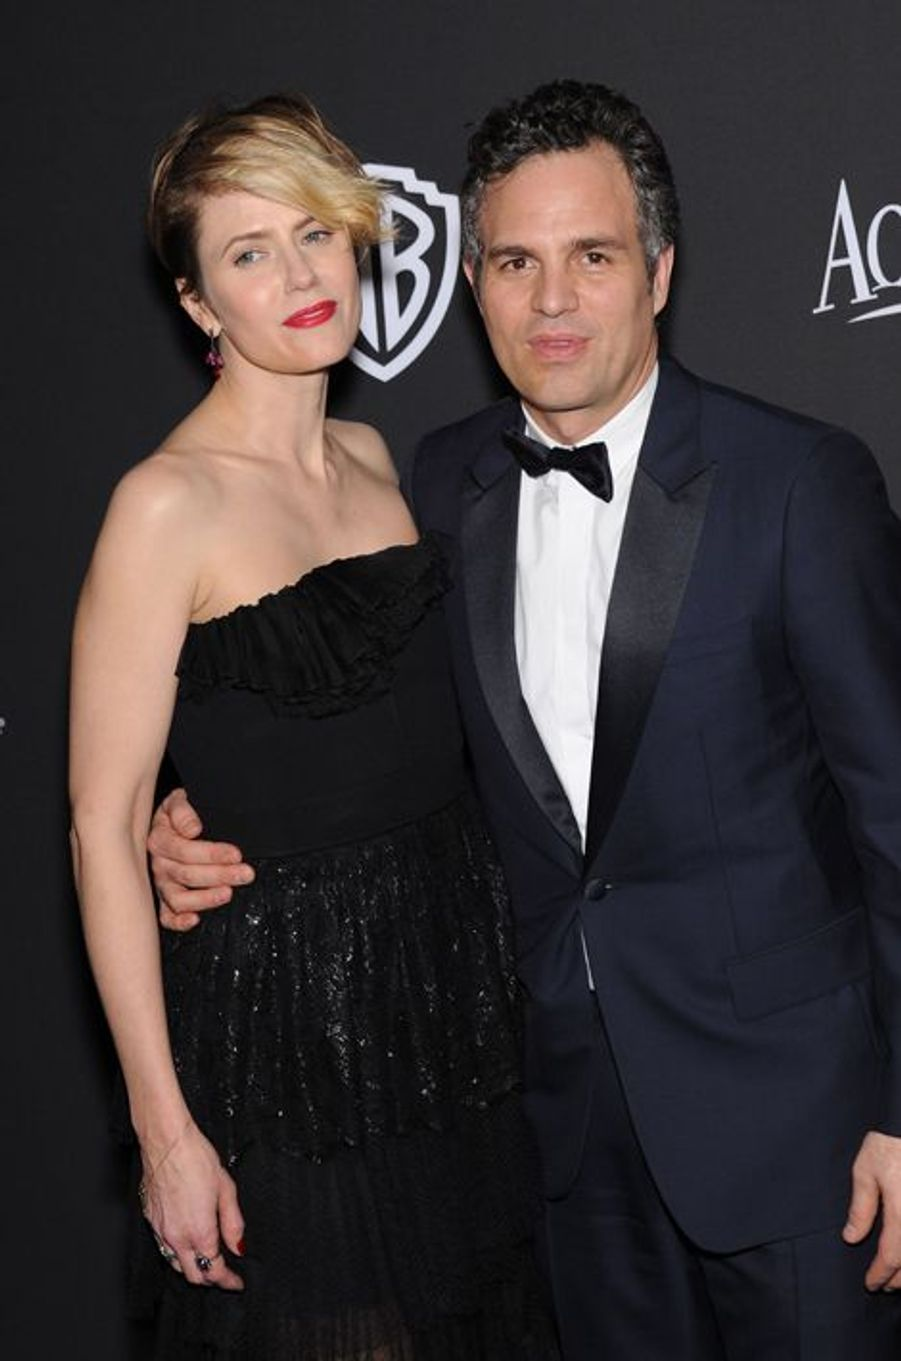 Sunrise Coigney et Mark Ruffalo à Los Angeles le 11 janvier 2014